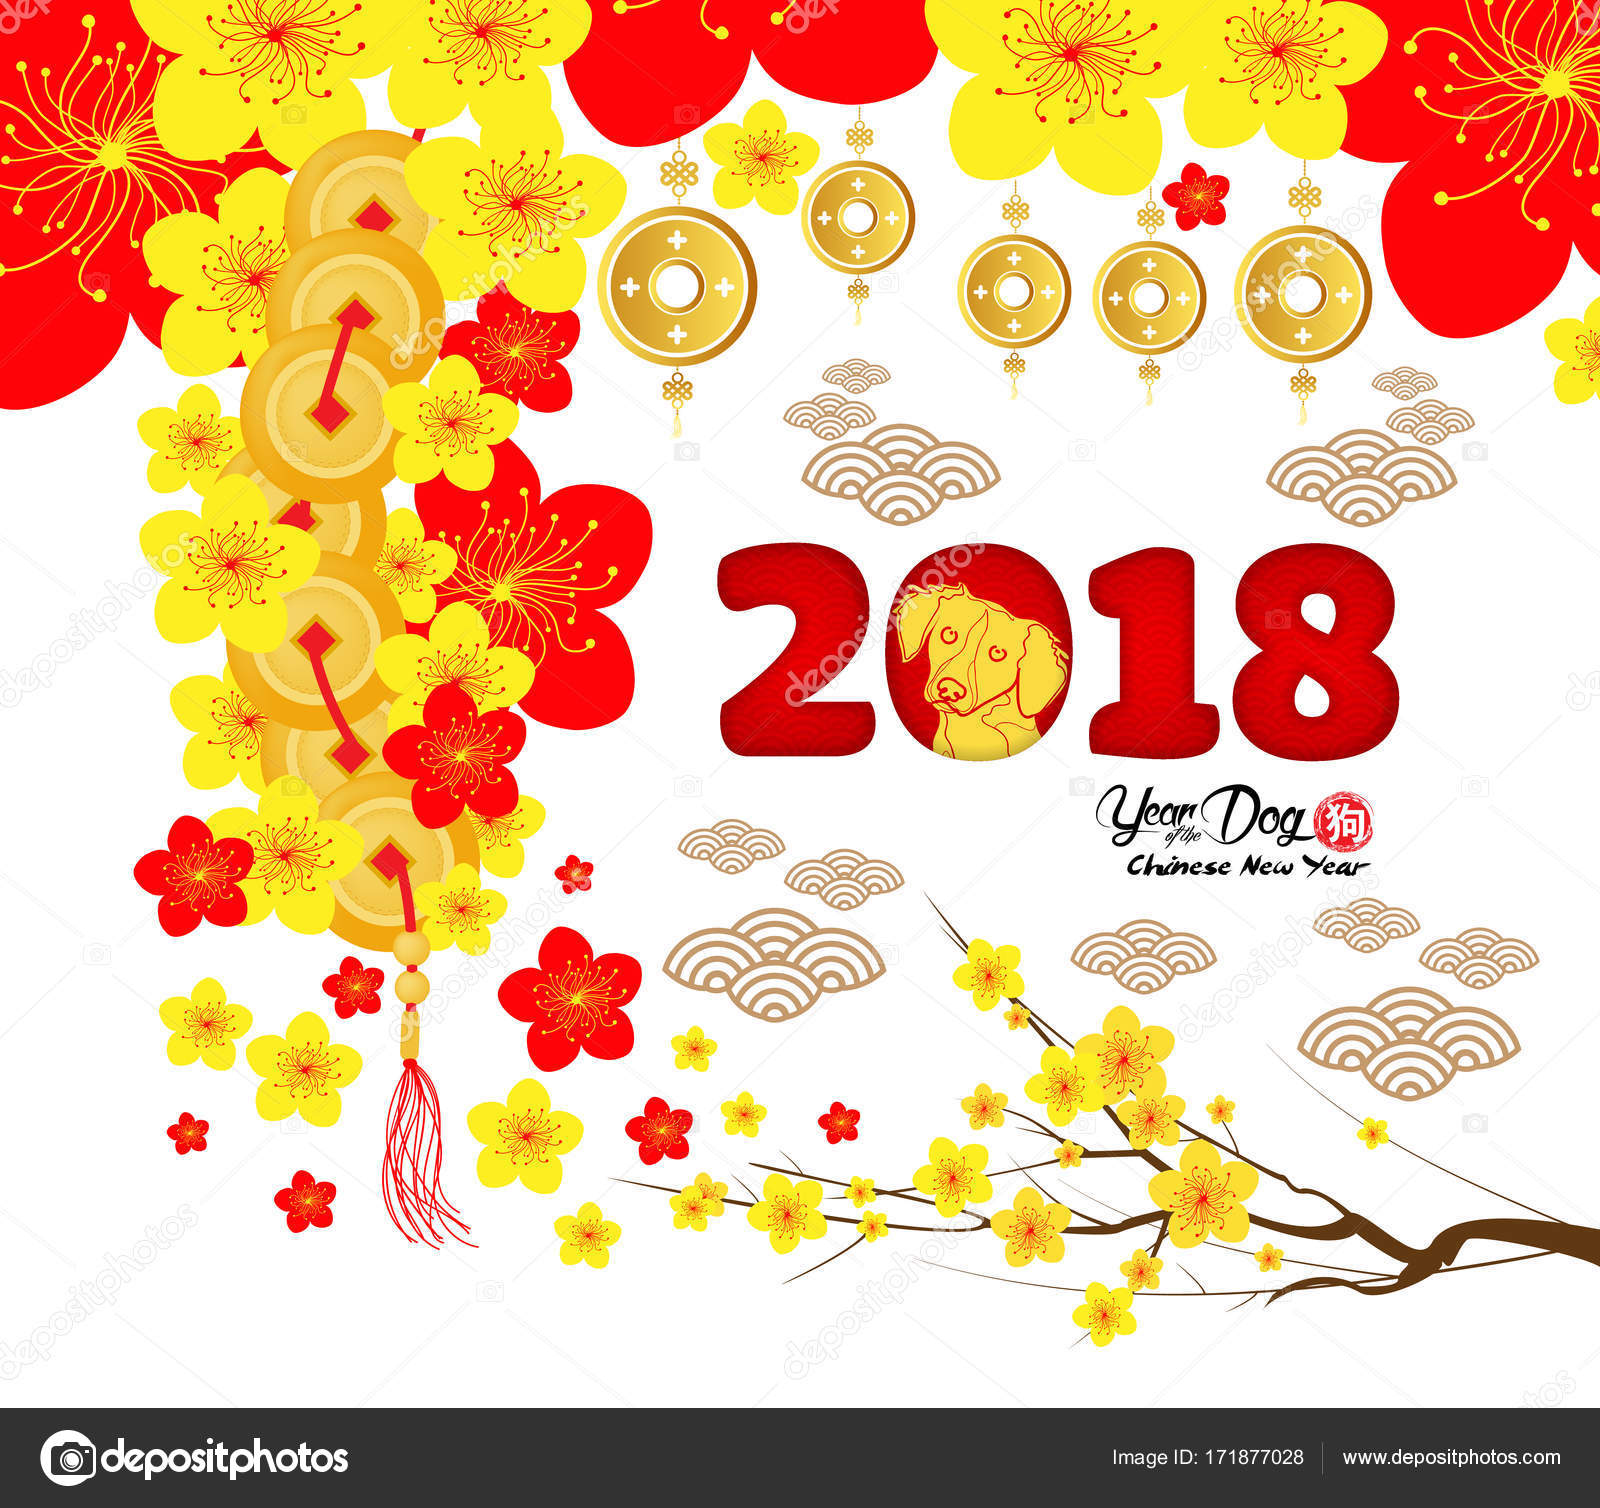 2018 chinese new year greeting card paper cut with yellow dog and 2018 chinese new year greeting card paper cut with yellow dog and sakura flowers background m4hsunfo